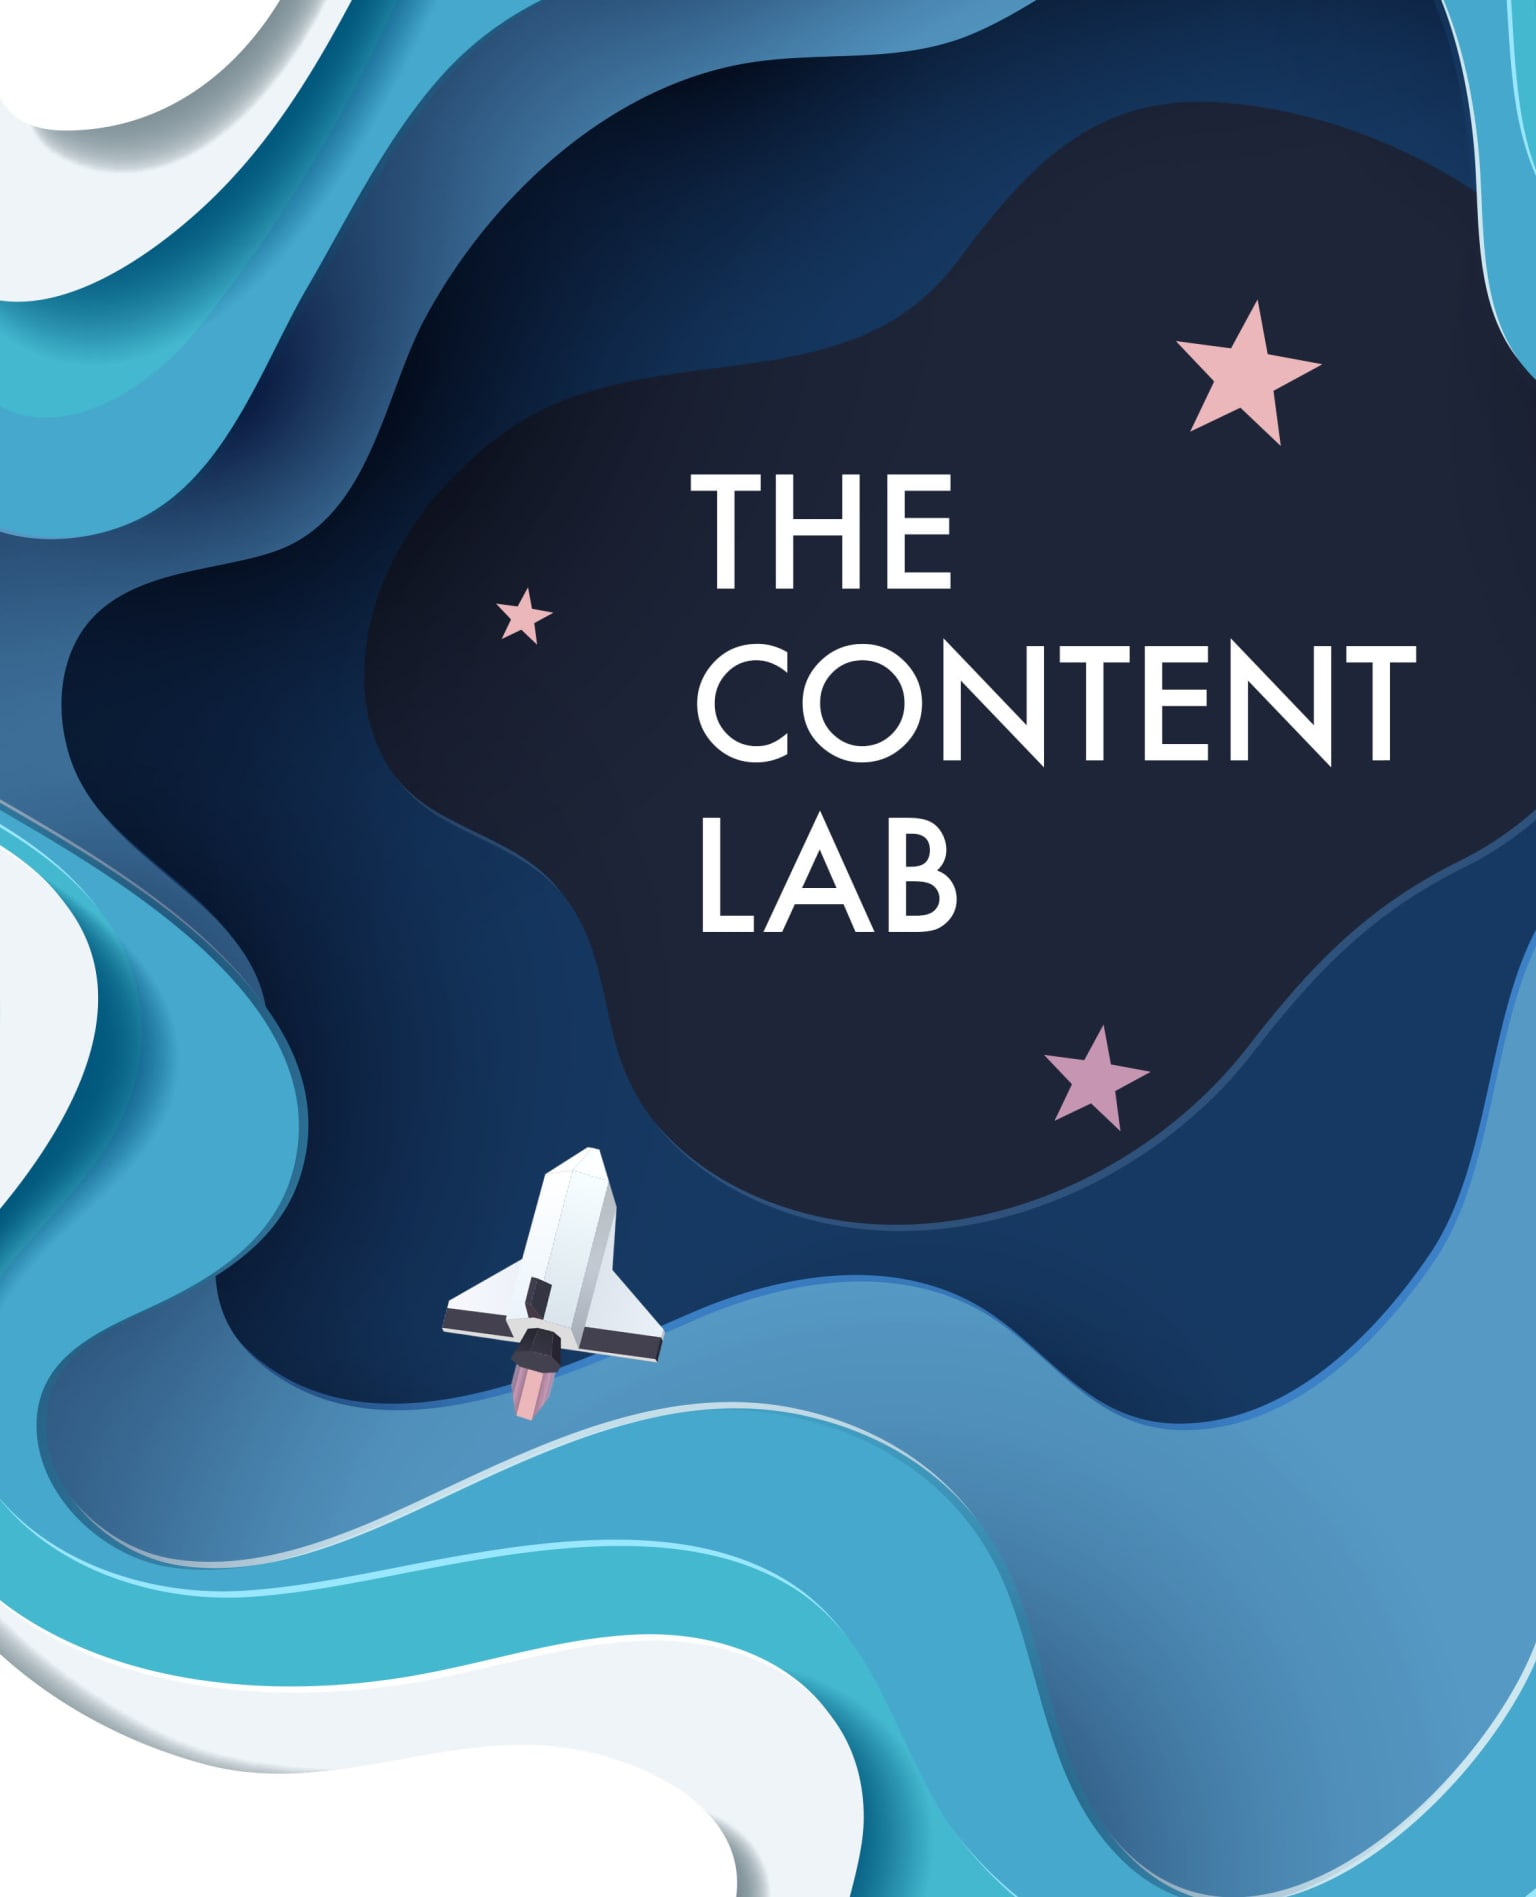 The Content Lab